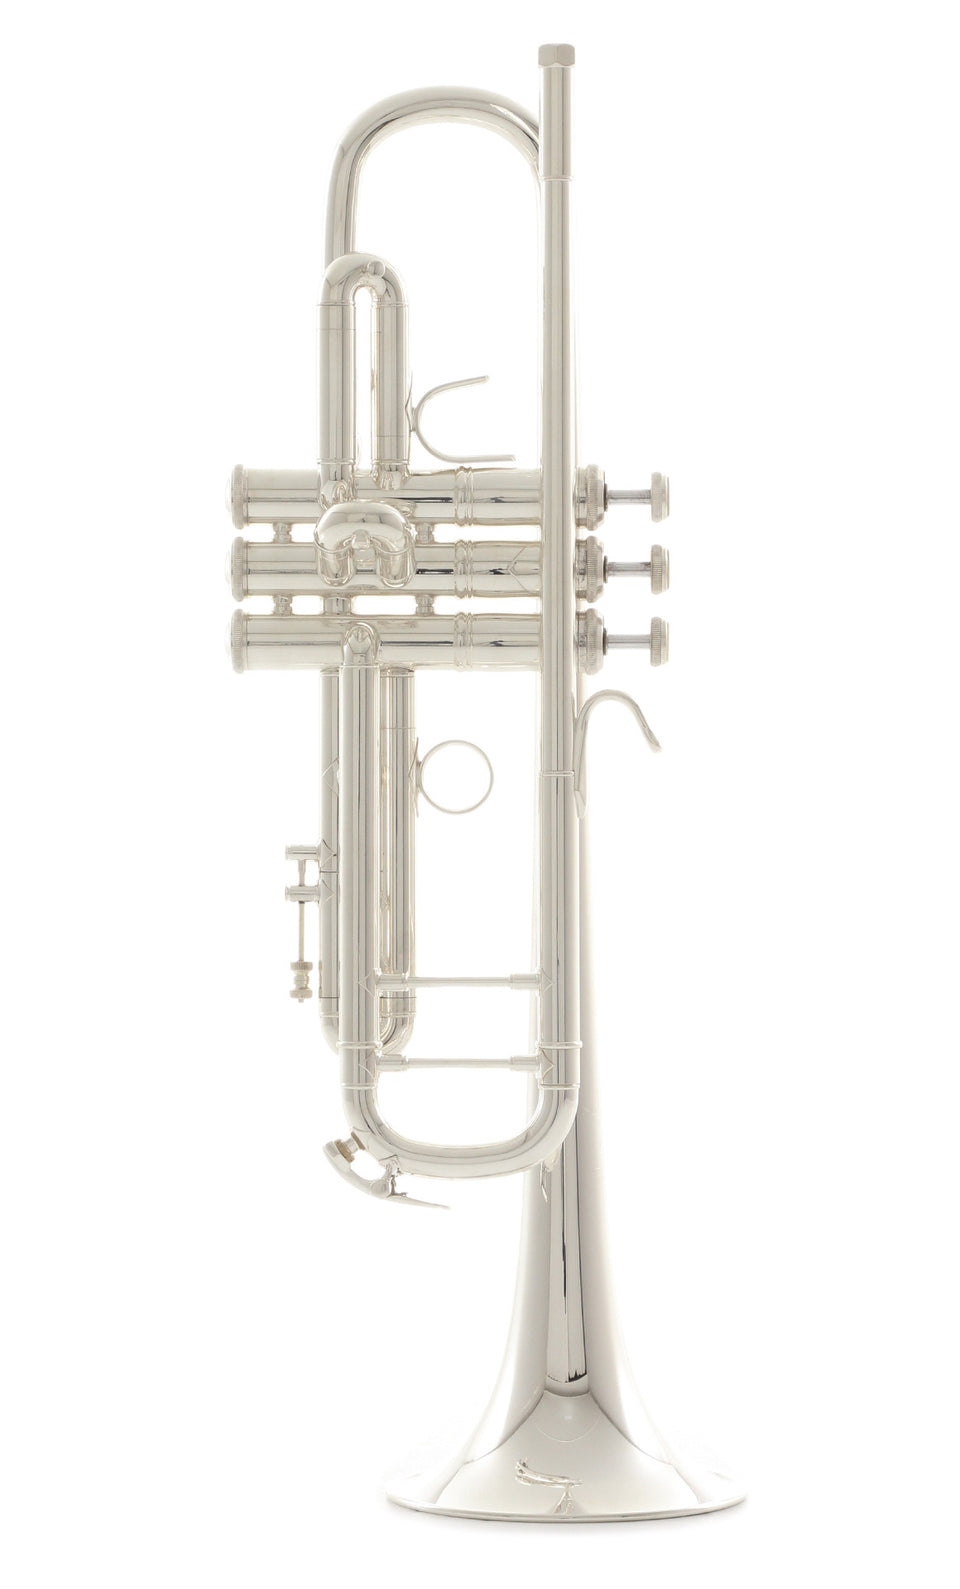 Bach 180S37 Stradivarius B-Flat Trumpet Outfit - Silver Plated